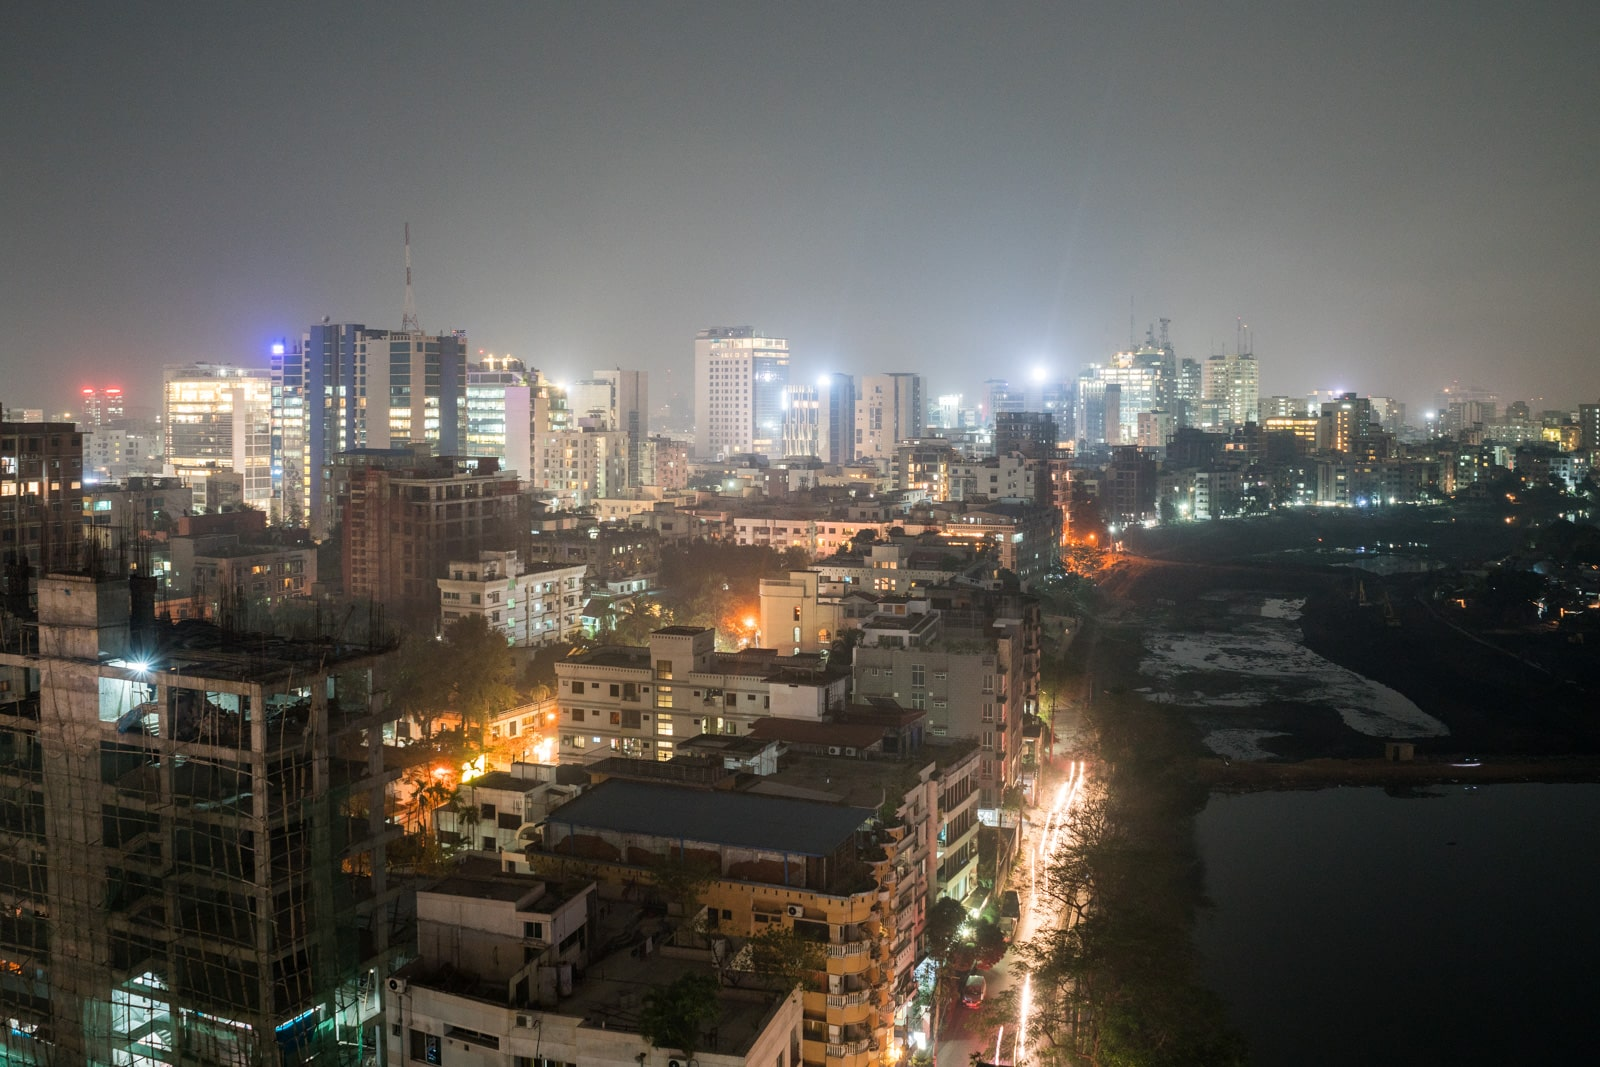 Guide to solo female travel in Bangladesh - Northern Dhaka at night - Lost With Purpose travel blog